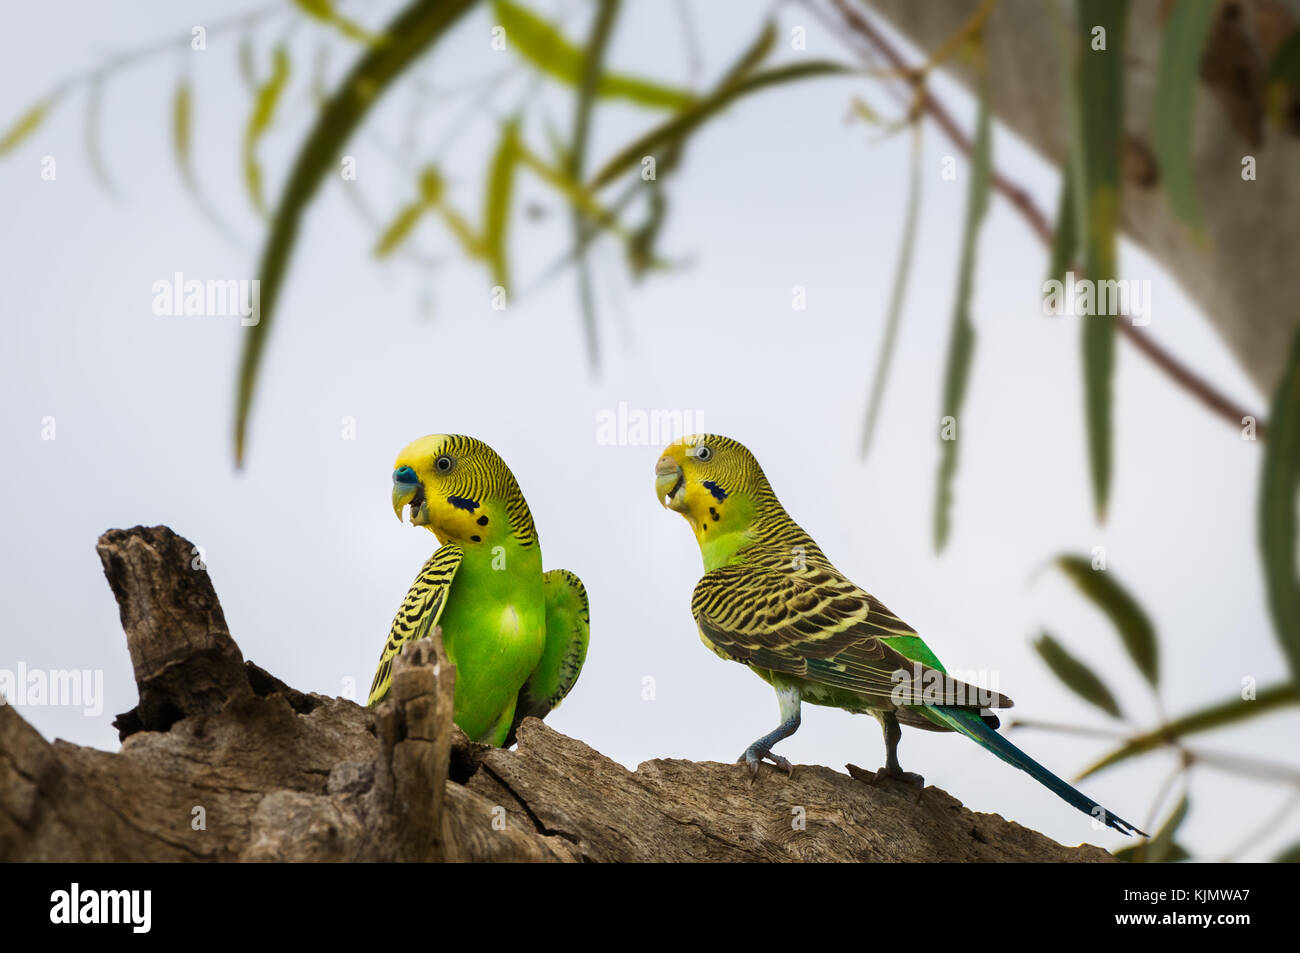 Pair of Budgerigars sitting in a River Red Gum tree. - Stock Image